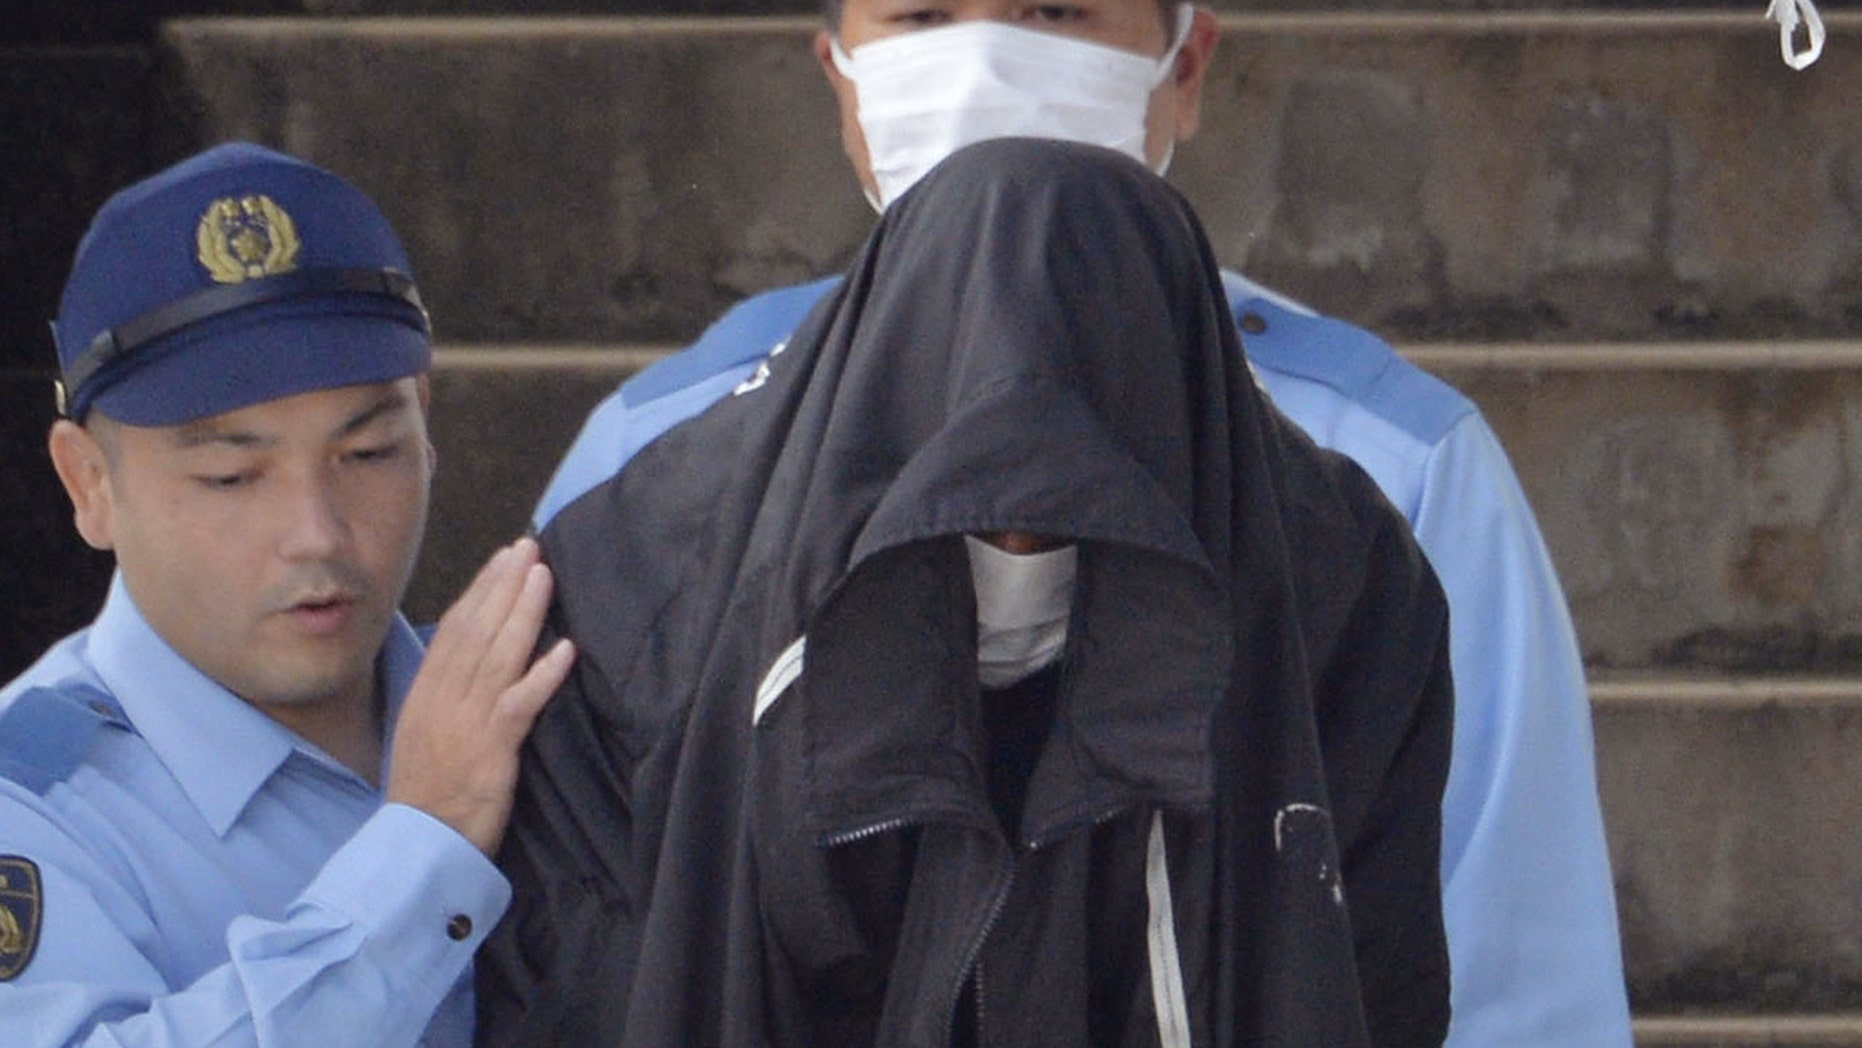 May 20, 2016: Police officers escort Kenneth Shinzato, center, an American working on a U.S. military base in Okinawa, out of Uruma Police Station to turn him over to the public prosecutor's office.